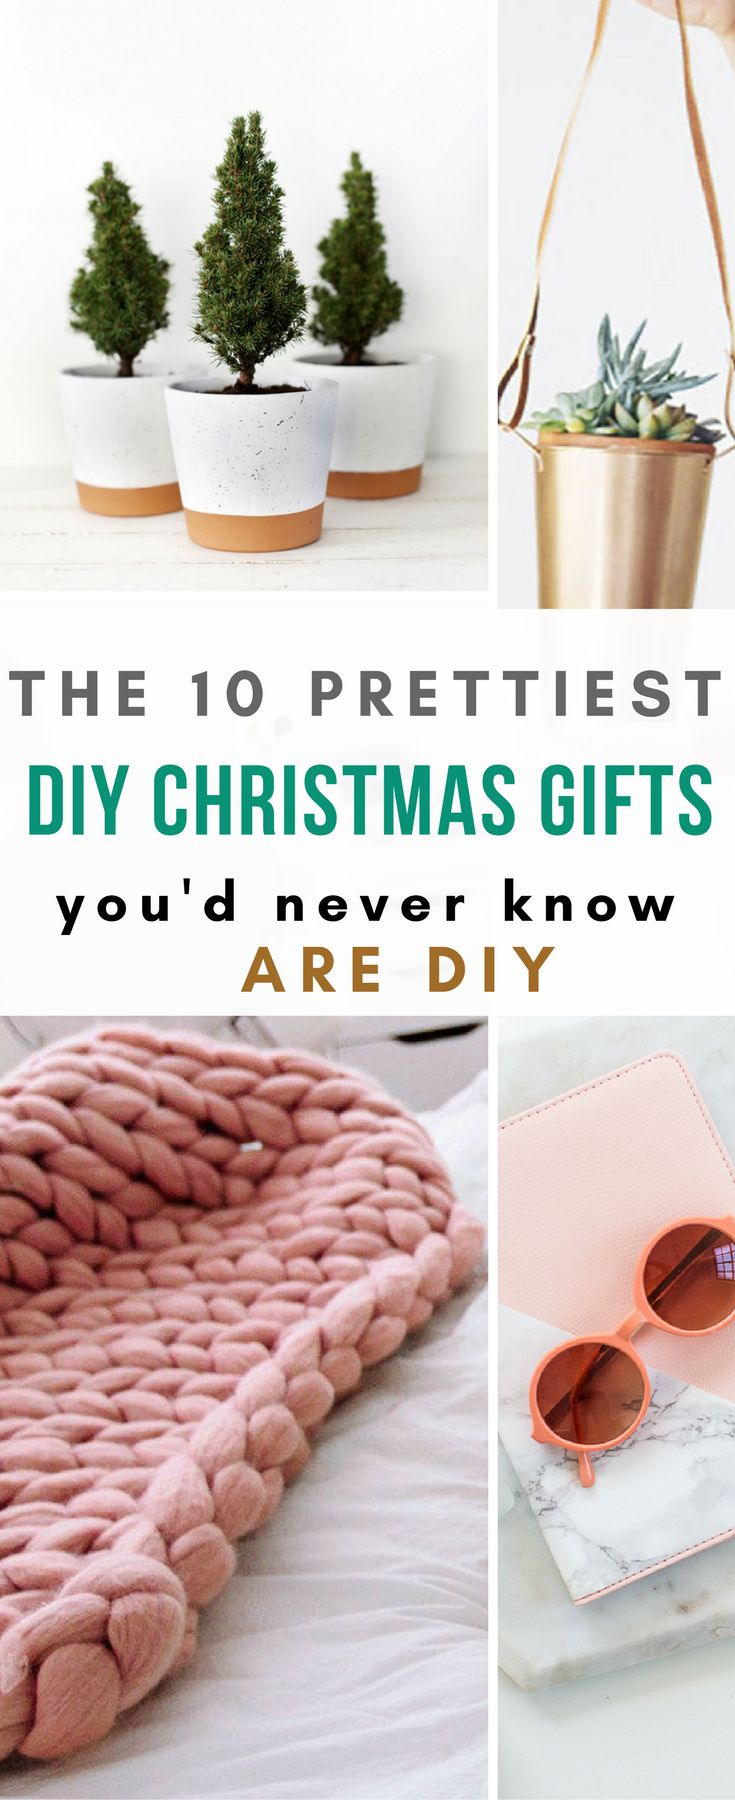 These DIY Christmas gifts are so pretty, you'd never ever guess they were hand made. Someone please make one of these for me! #diychristmas #diychristmasgift